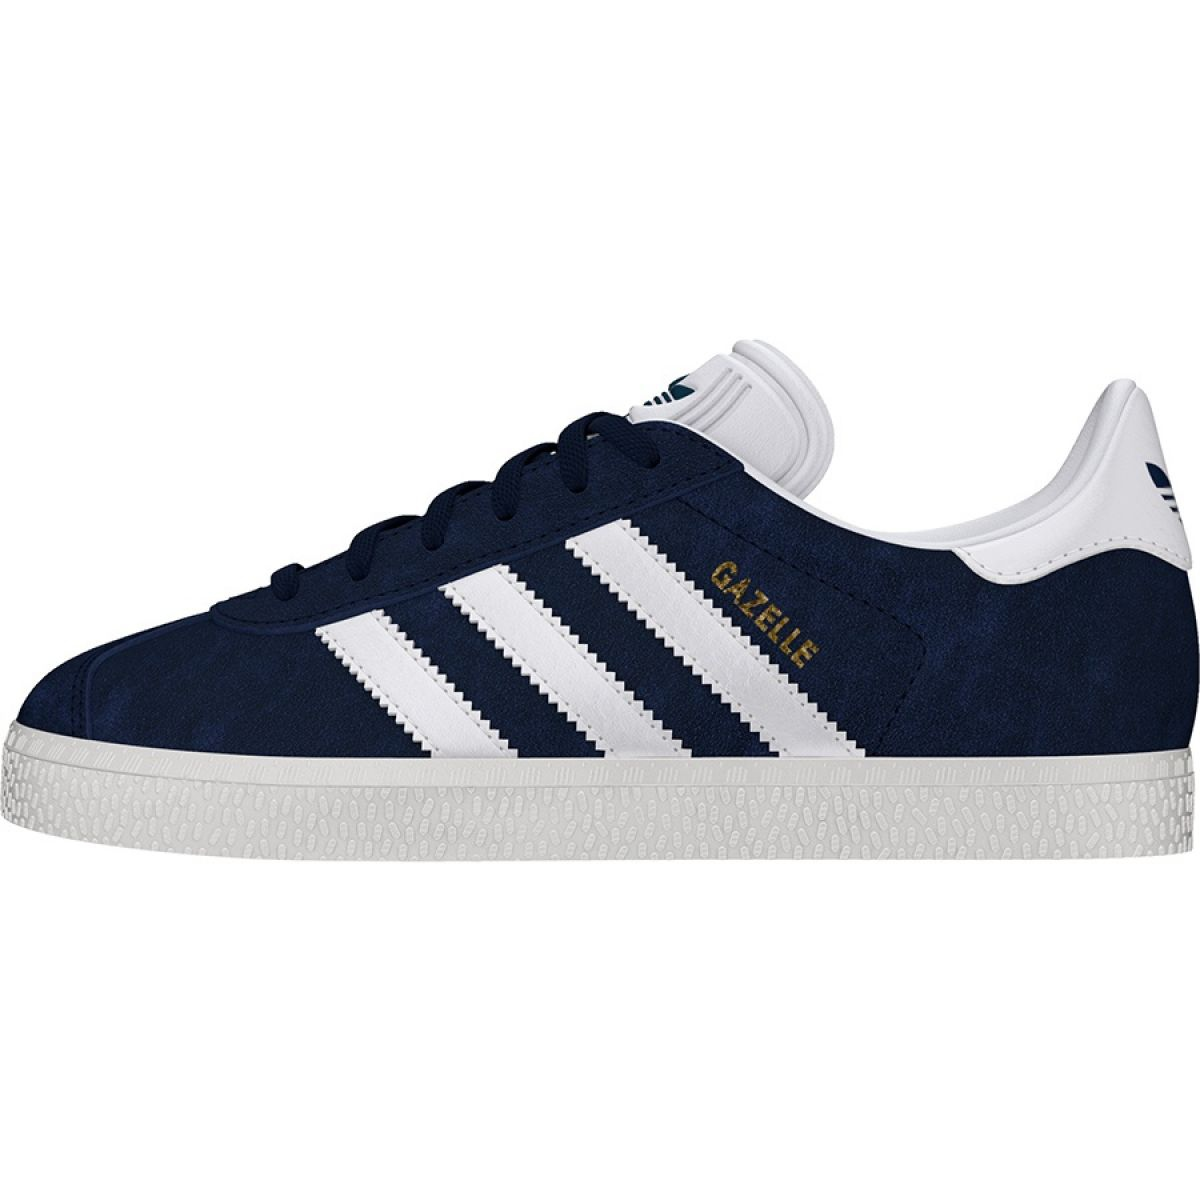 Sapatos Adidas Originals Gazelle Jr BY9144 marinha